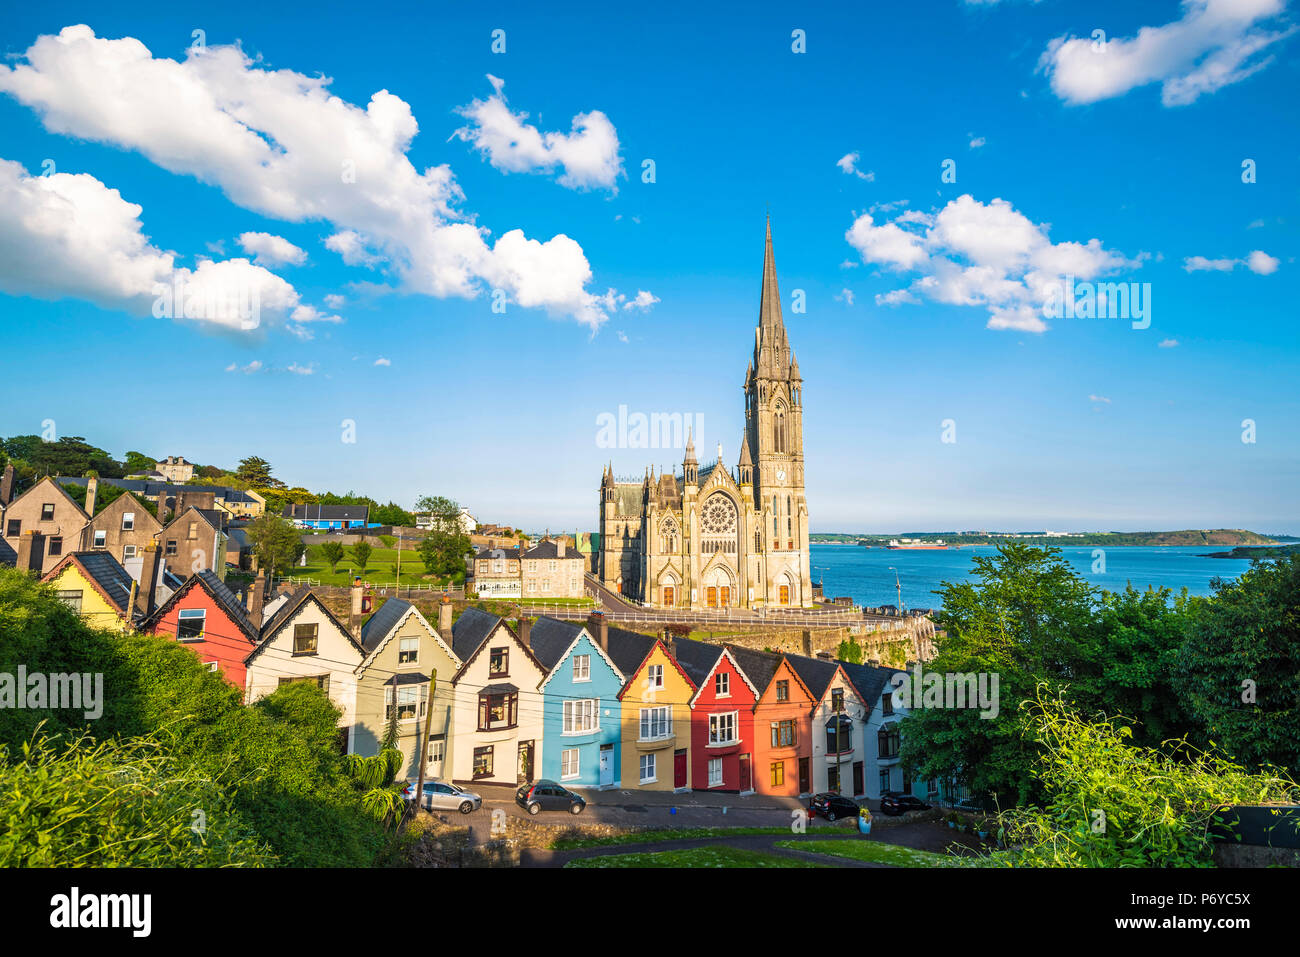 Cobh, County Cork, Munster province, Ireland, Europe. Colored houses in front of the St. Colman's cathedral. - Stock Image